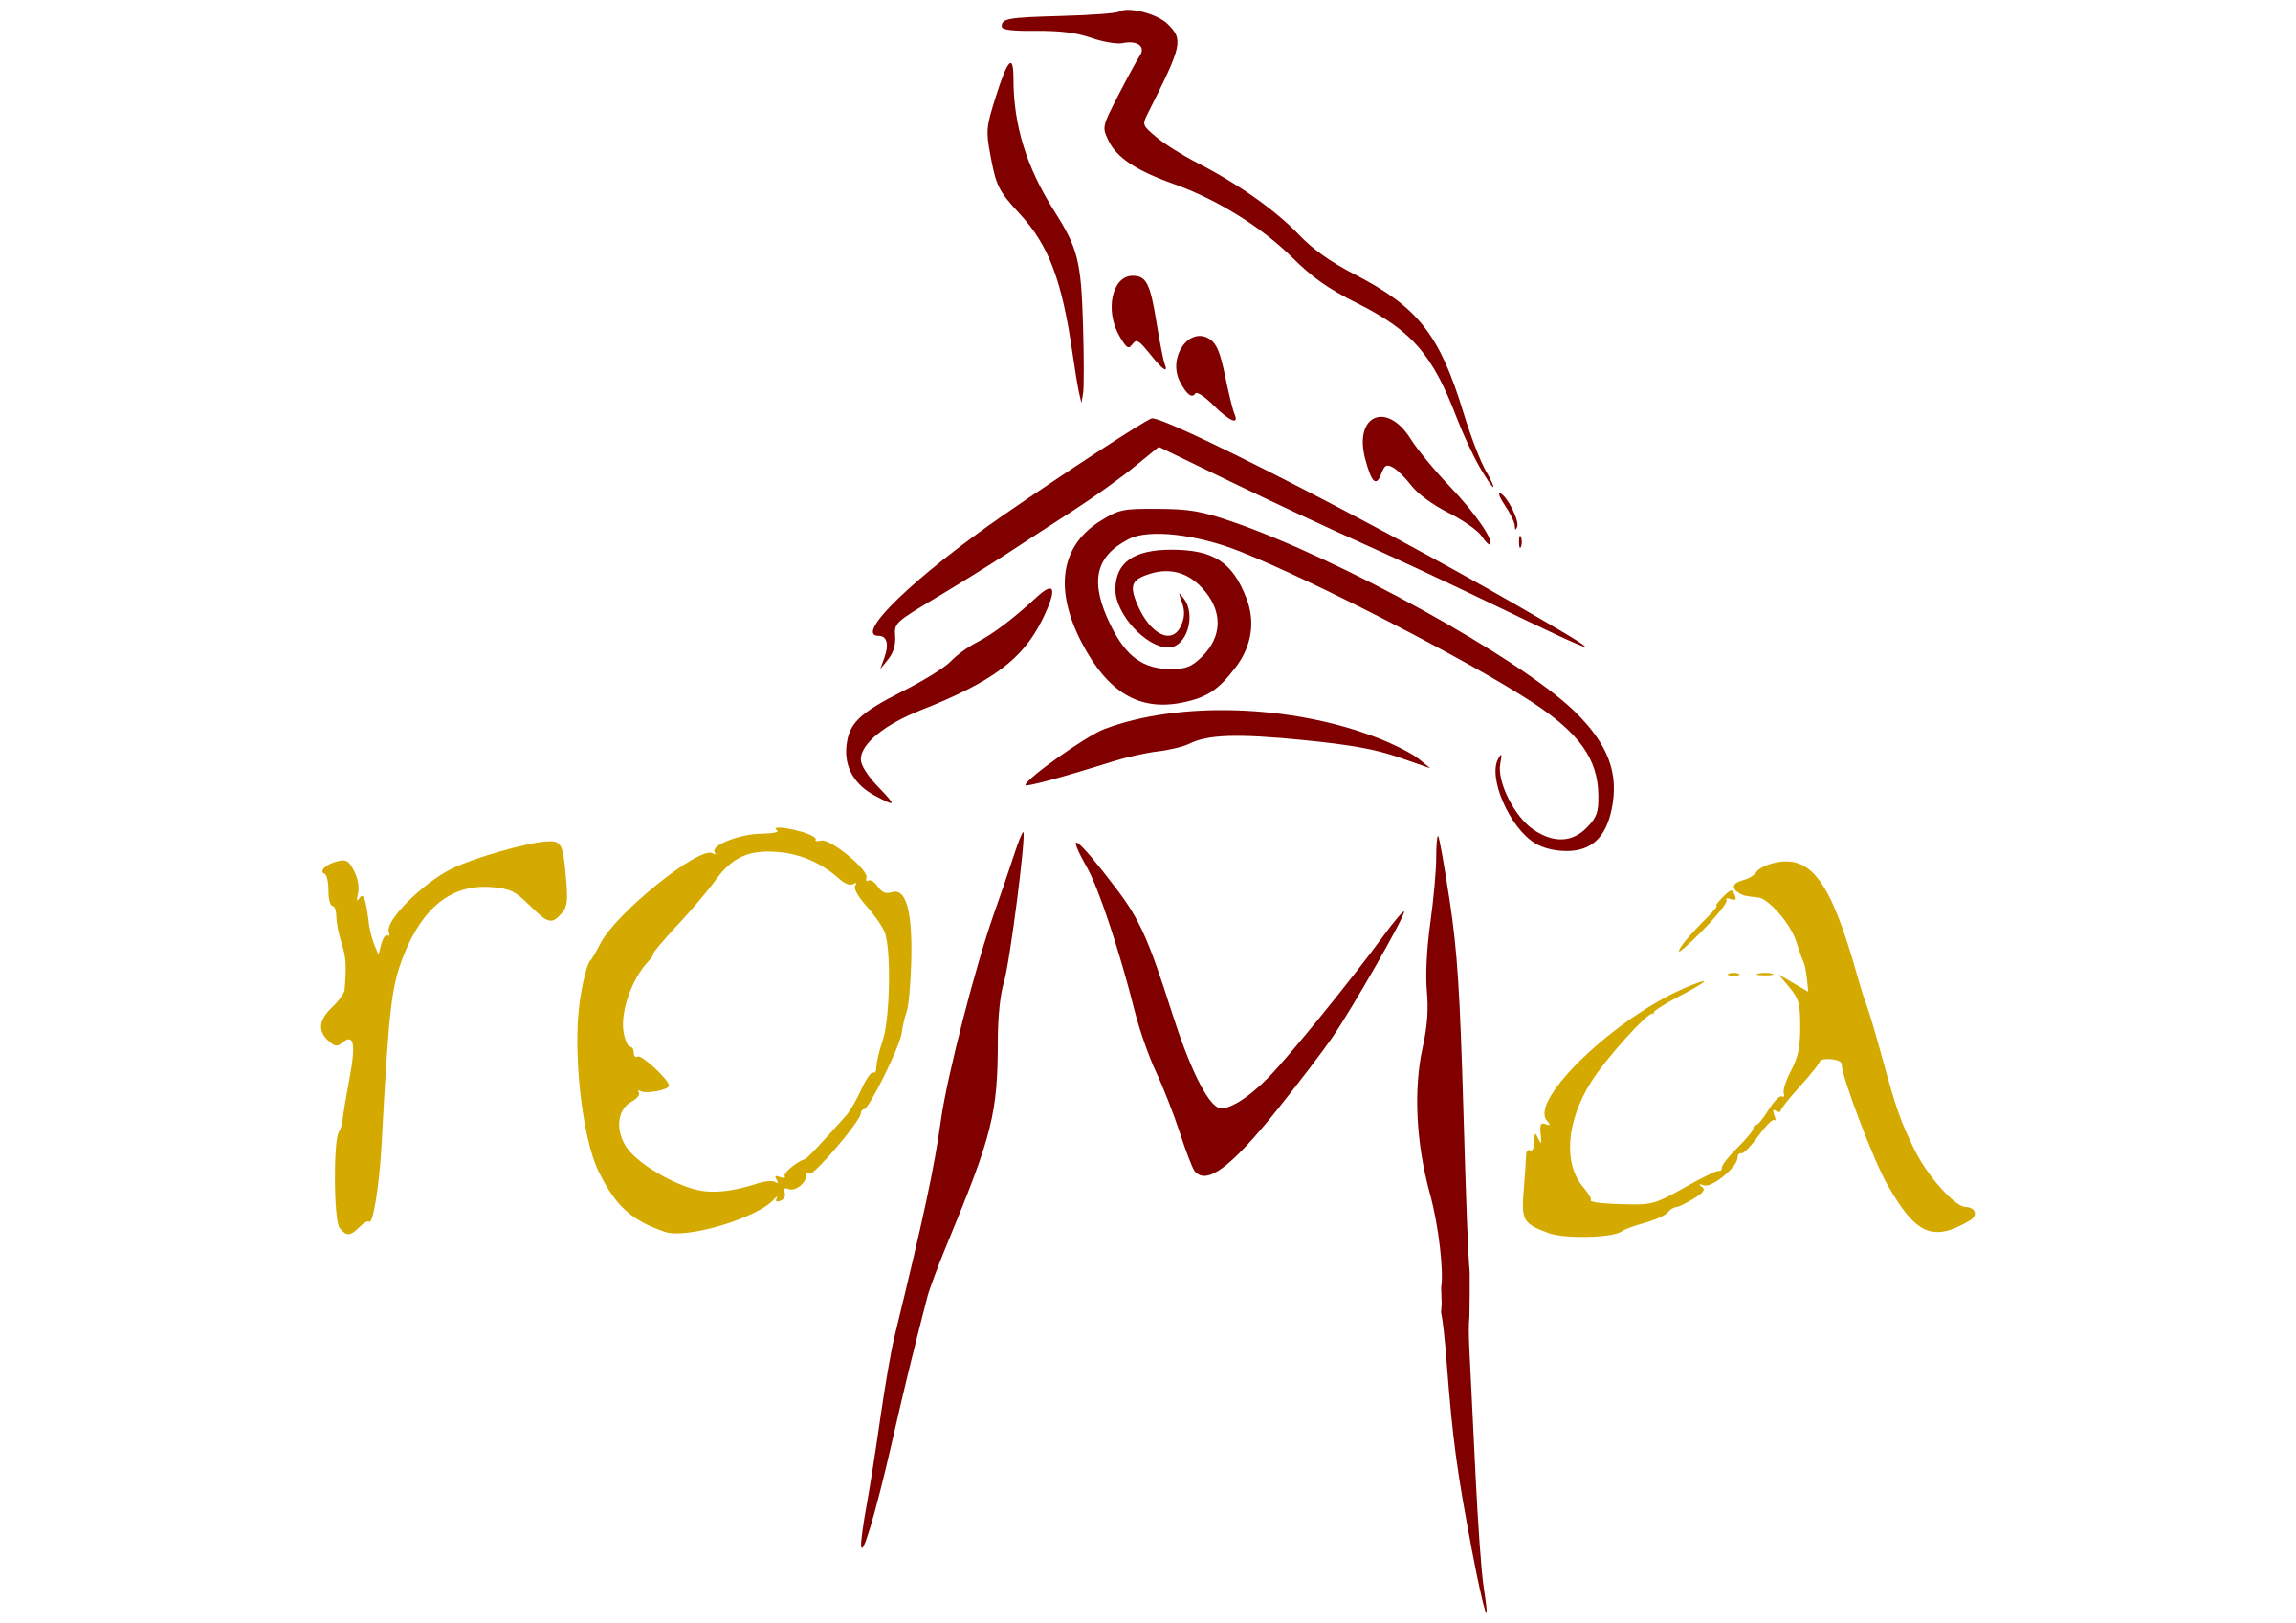 ROMA by dordy